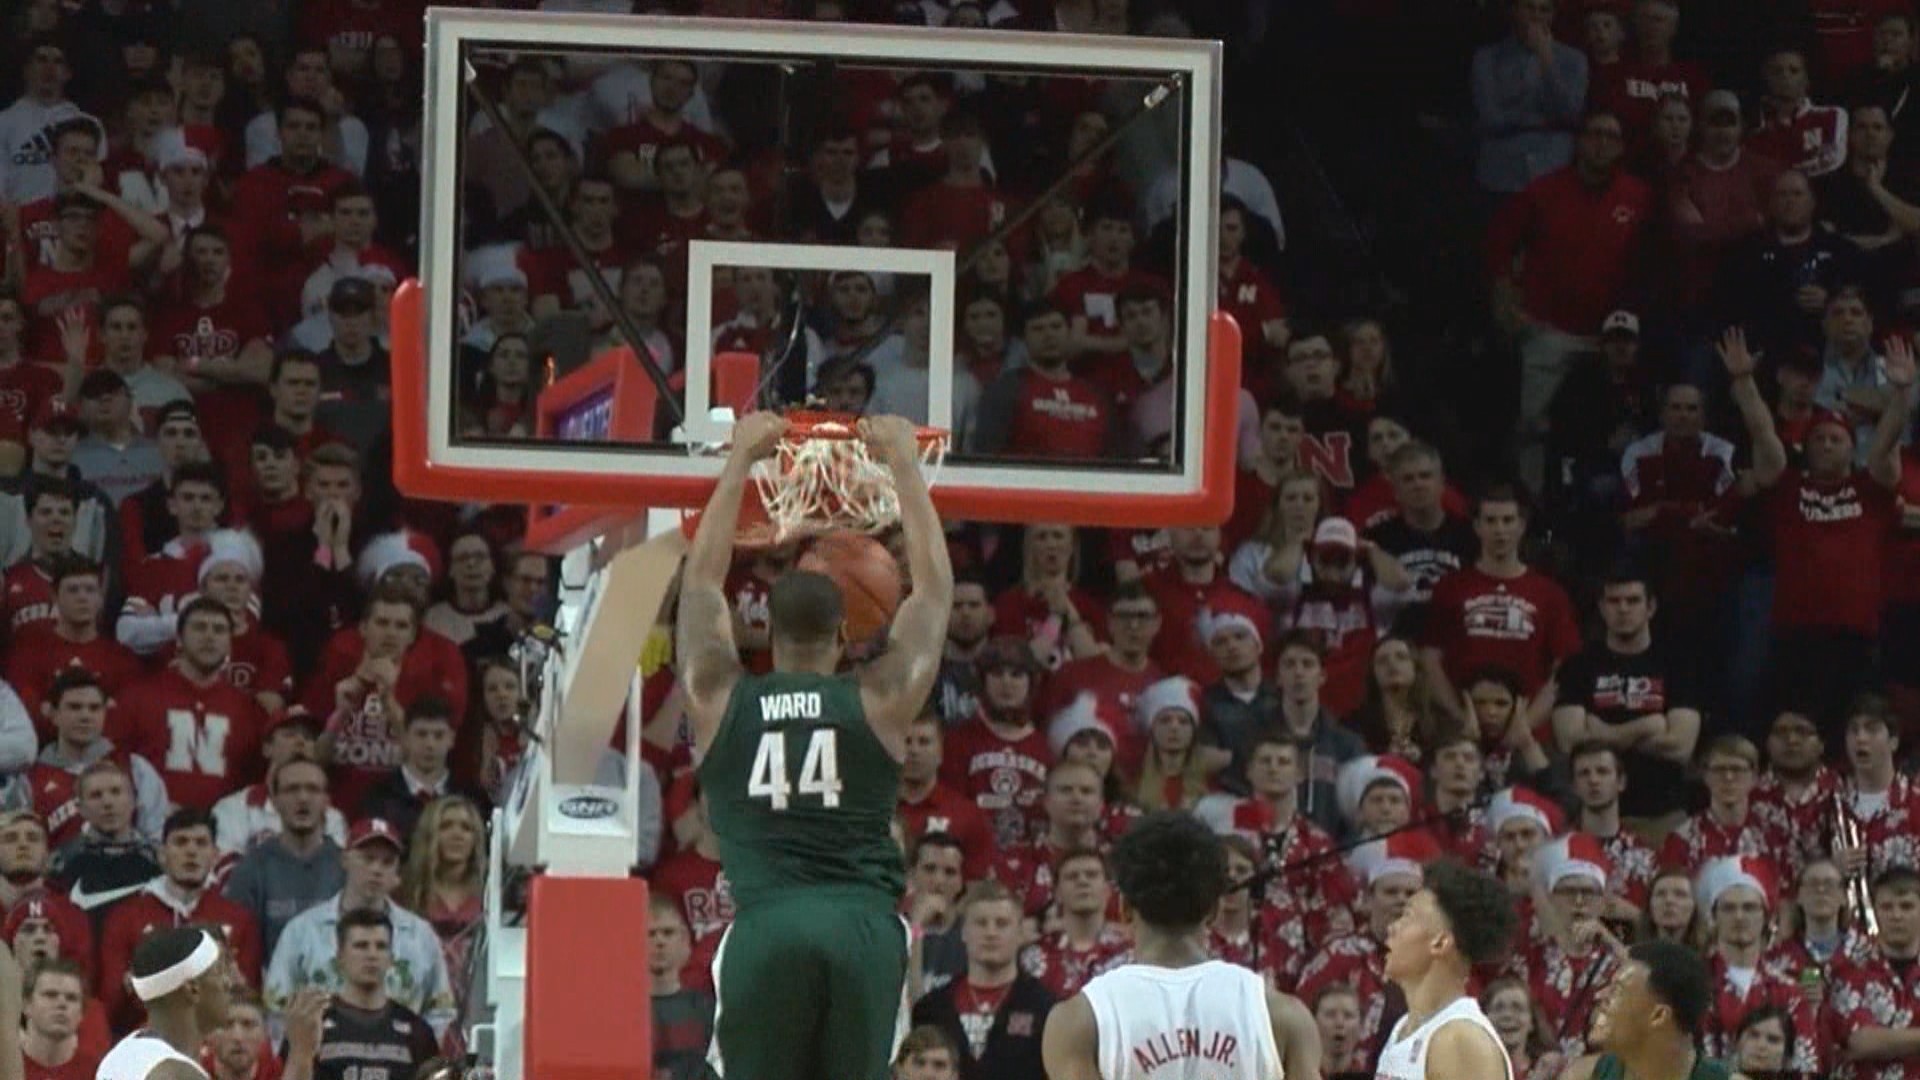 Michigan St. takes down Nebraska